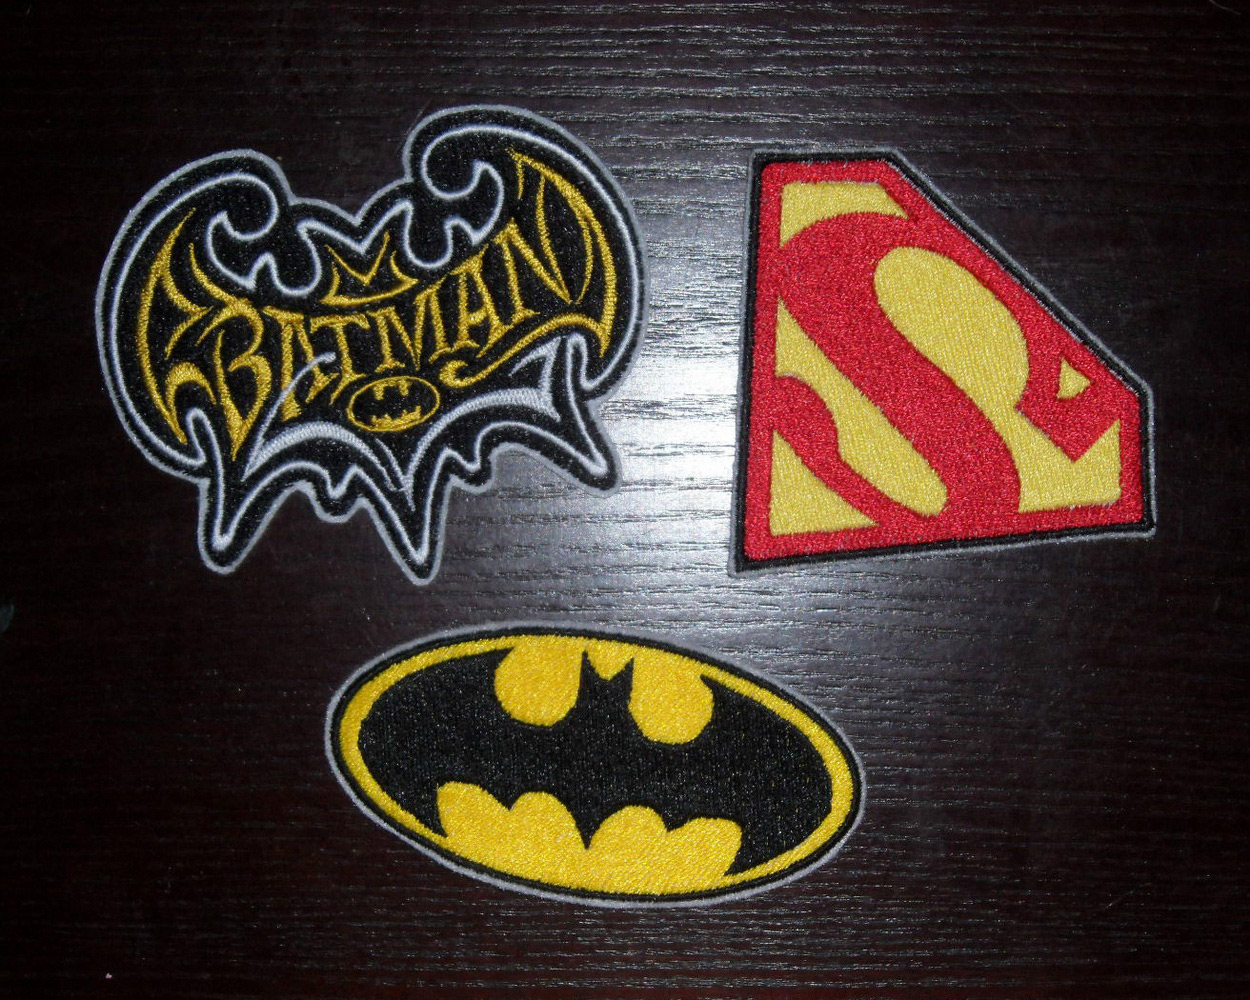 Superheroes logos embroidered